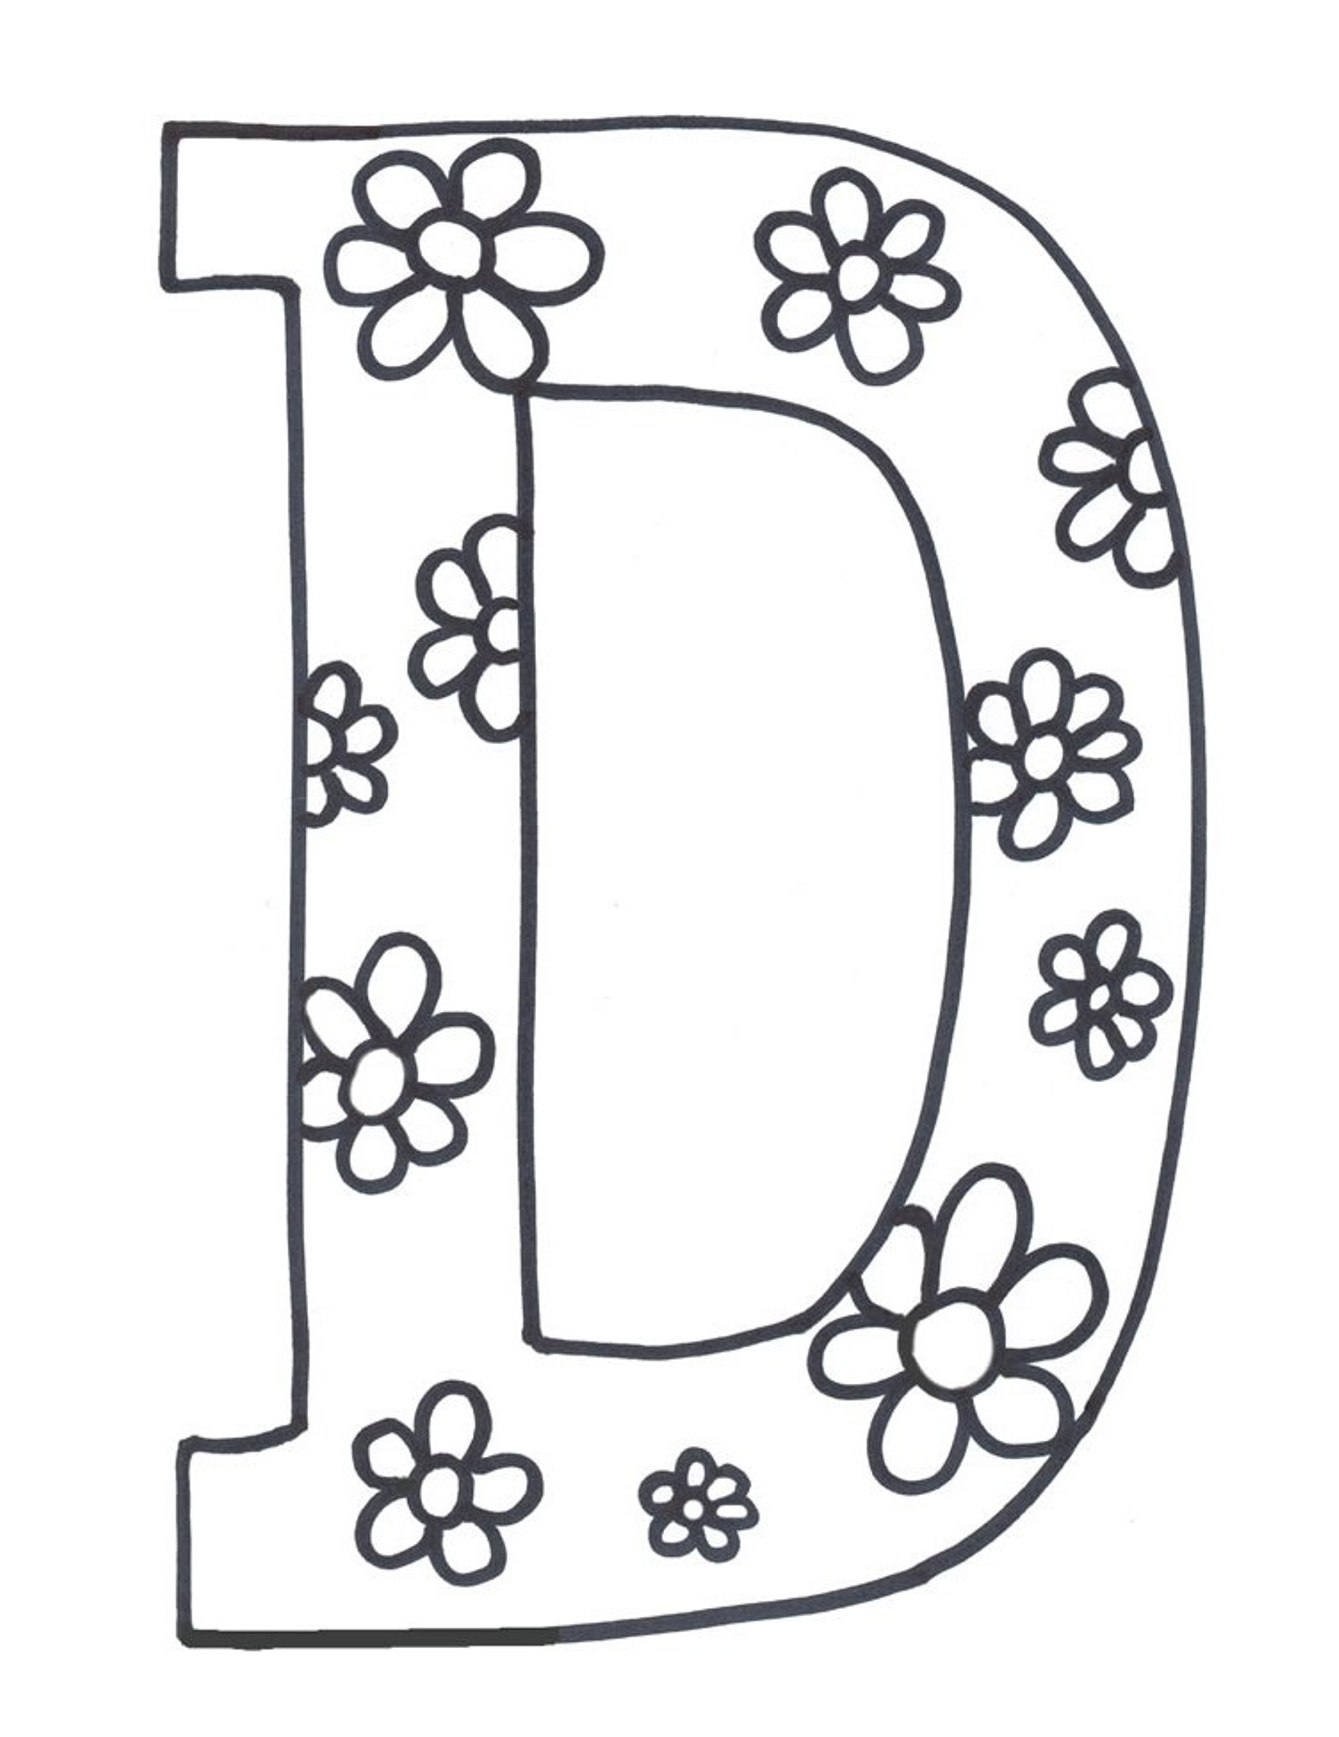 Letter d coloring pages to download and print for free for Alphabet pages to color